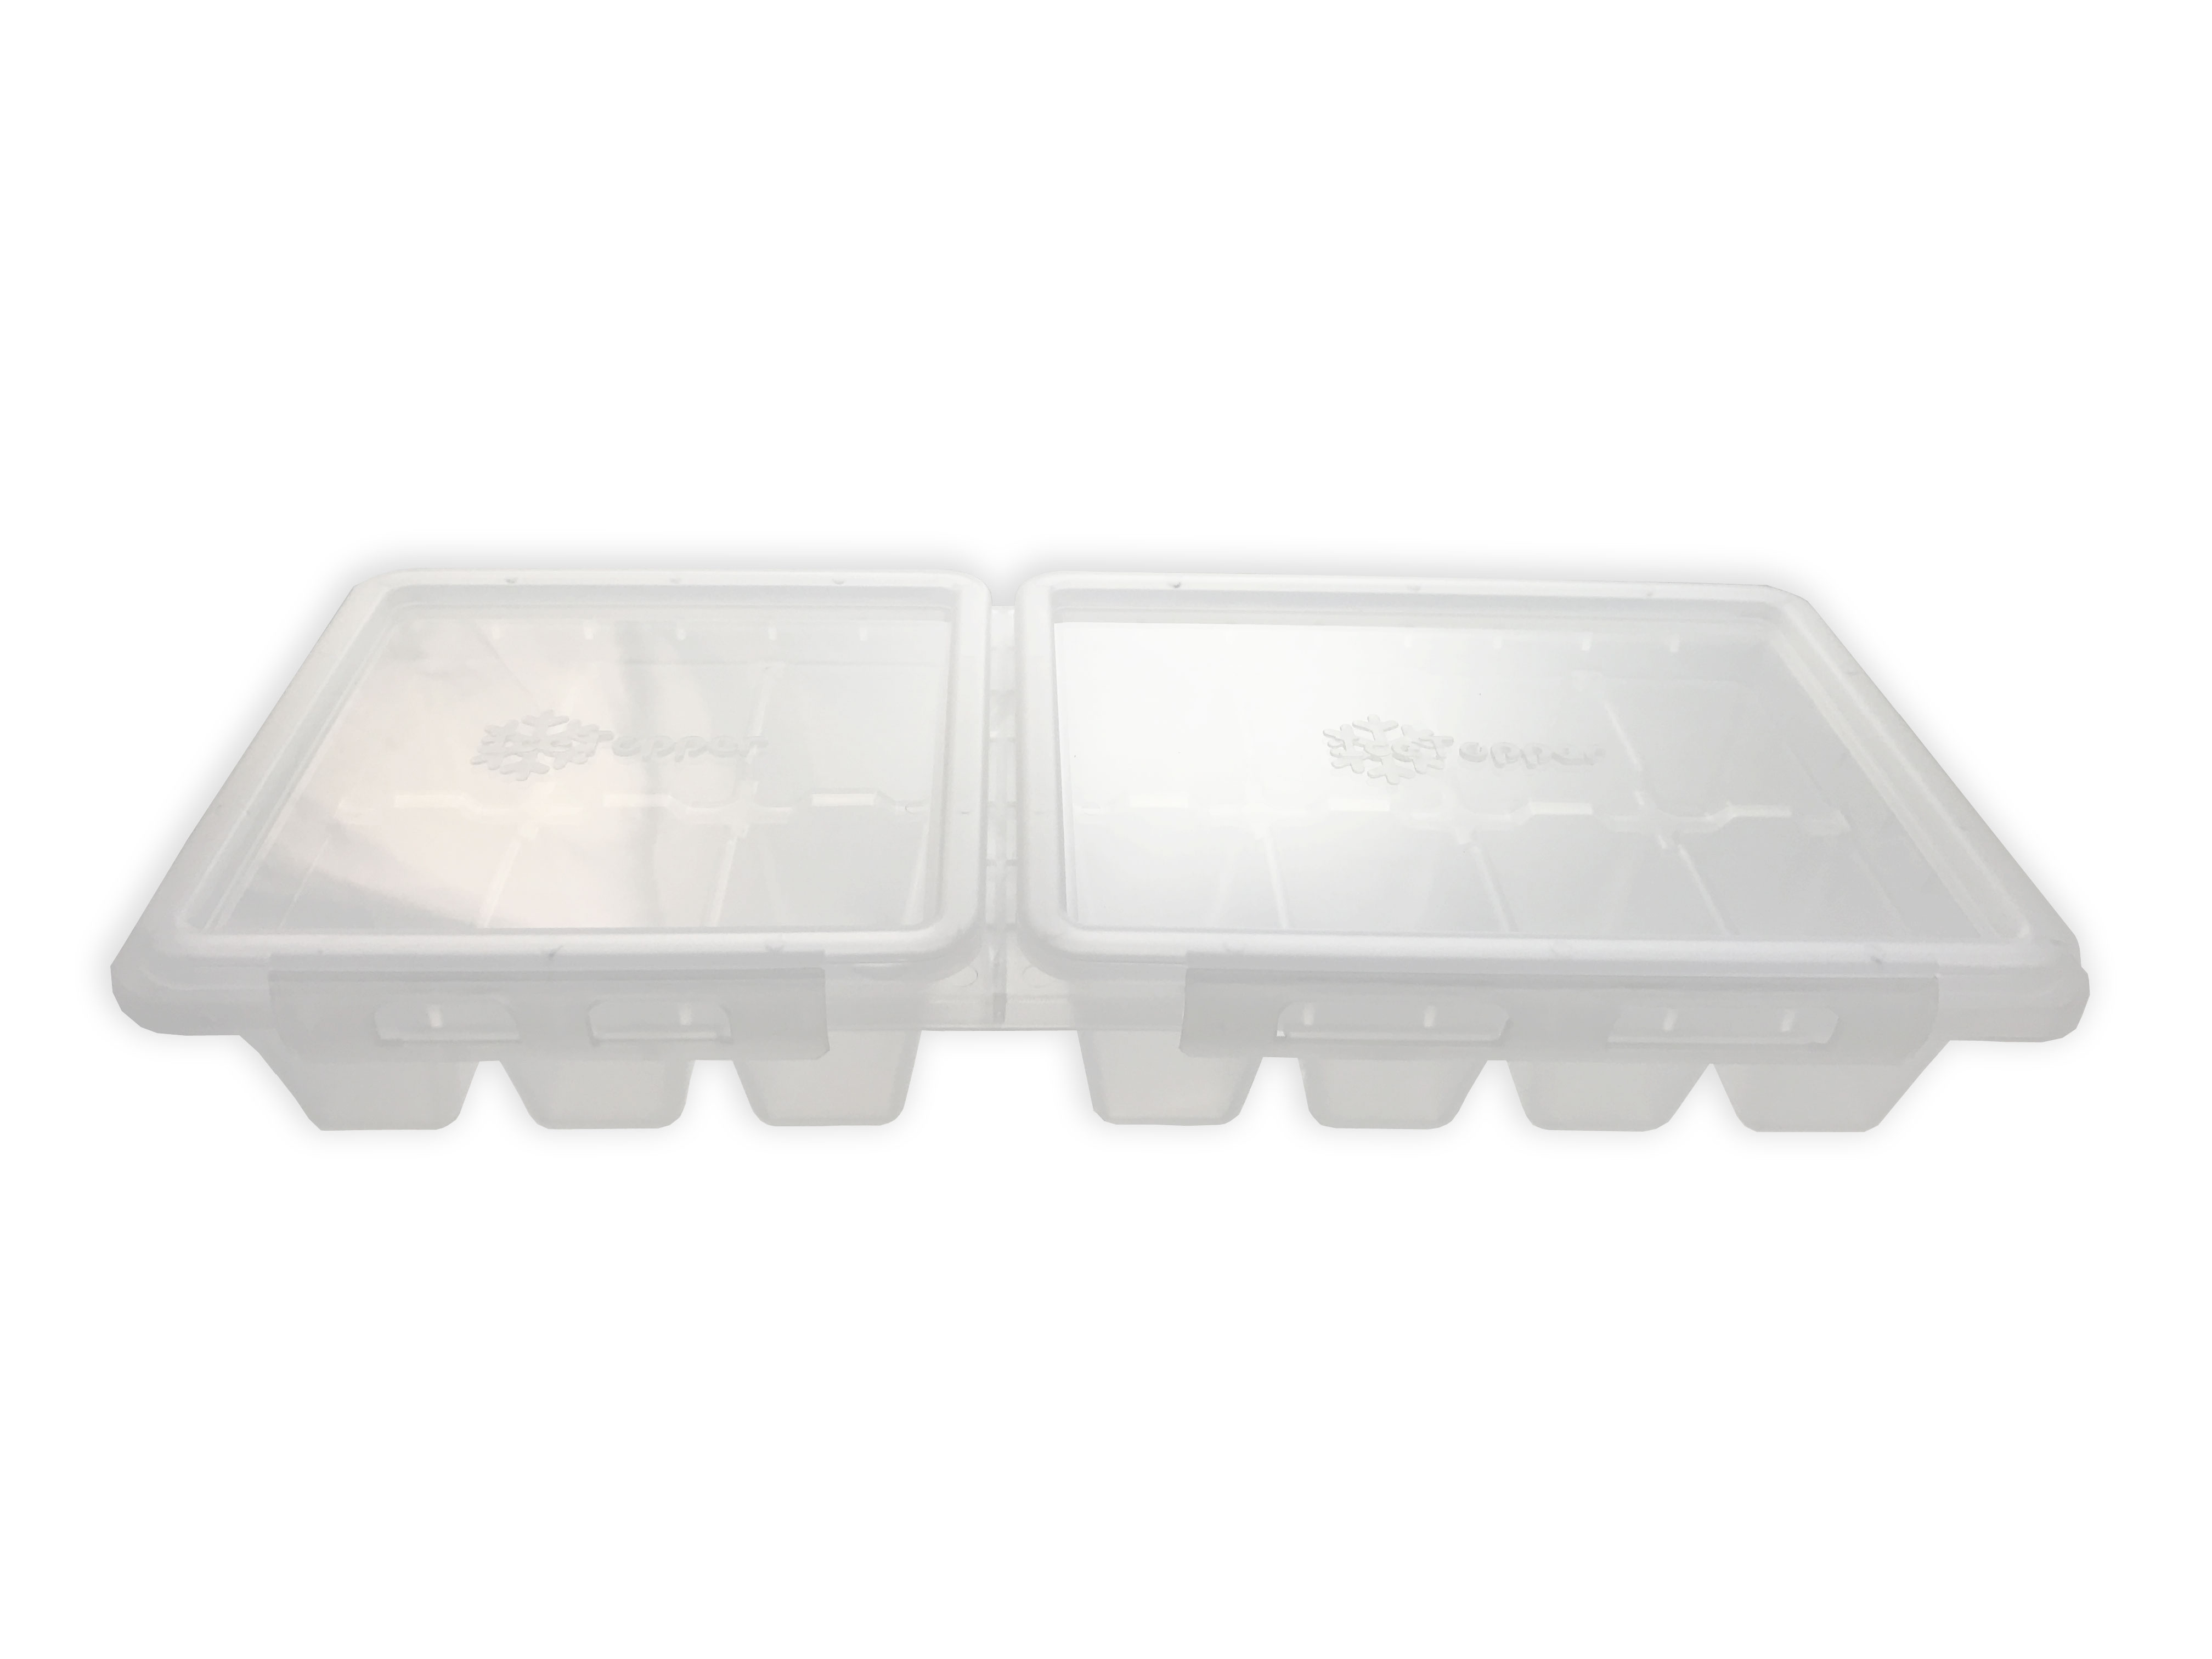 IceTopper Ice Cube Tray with Attached Lids - Walmart.com